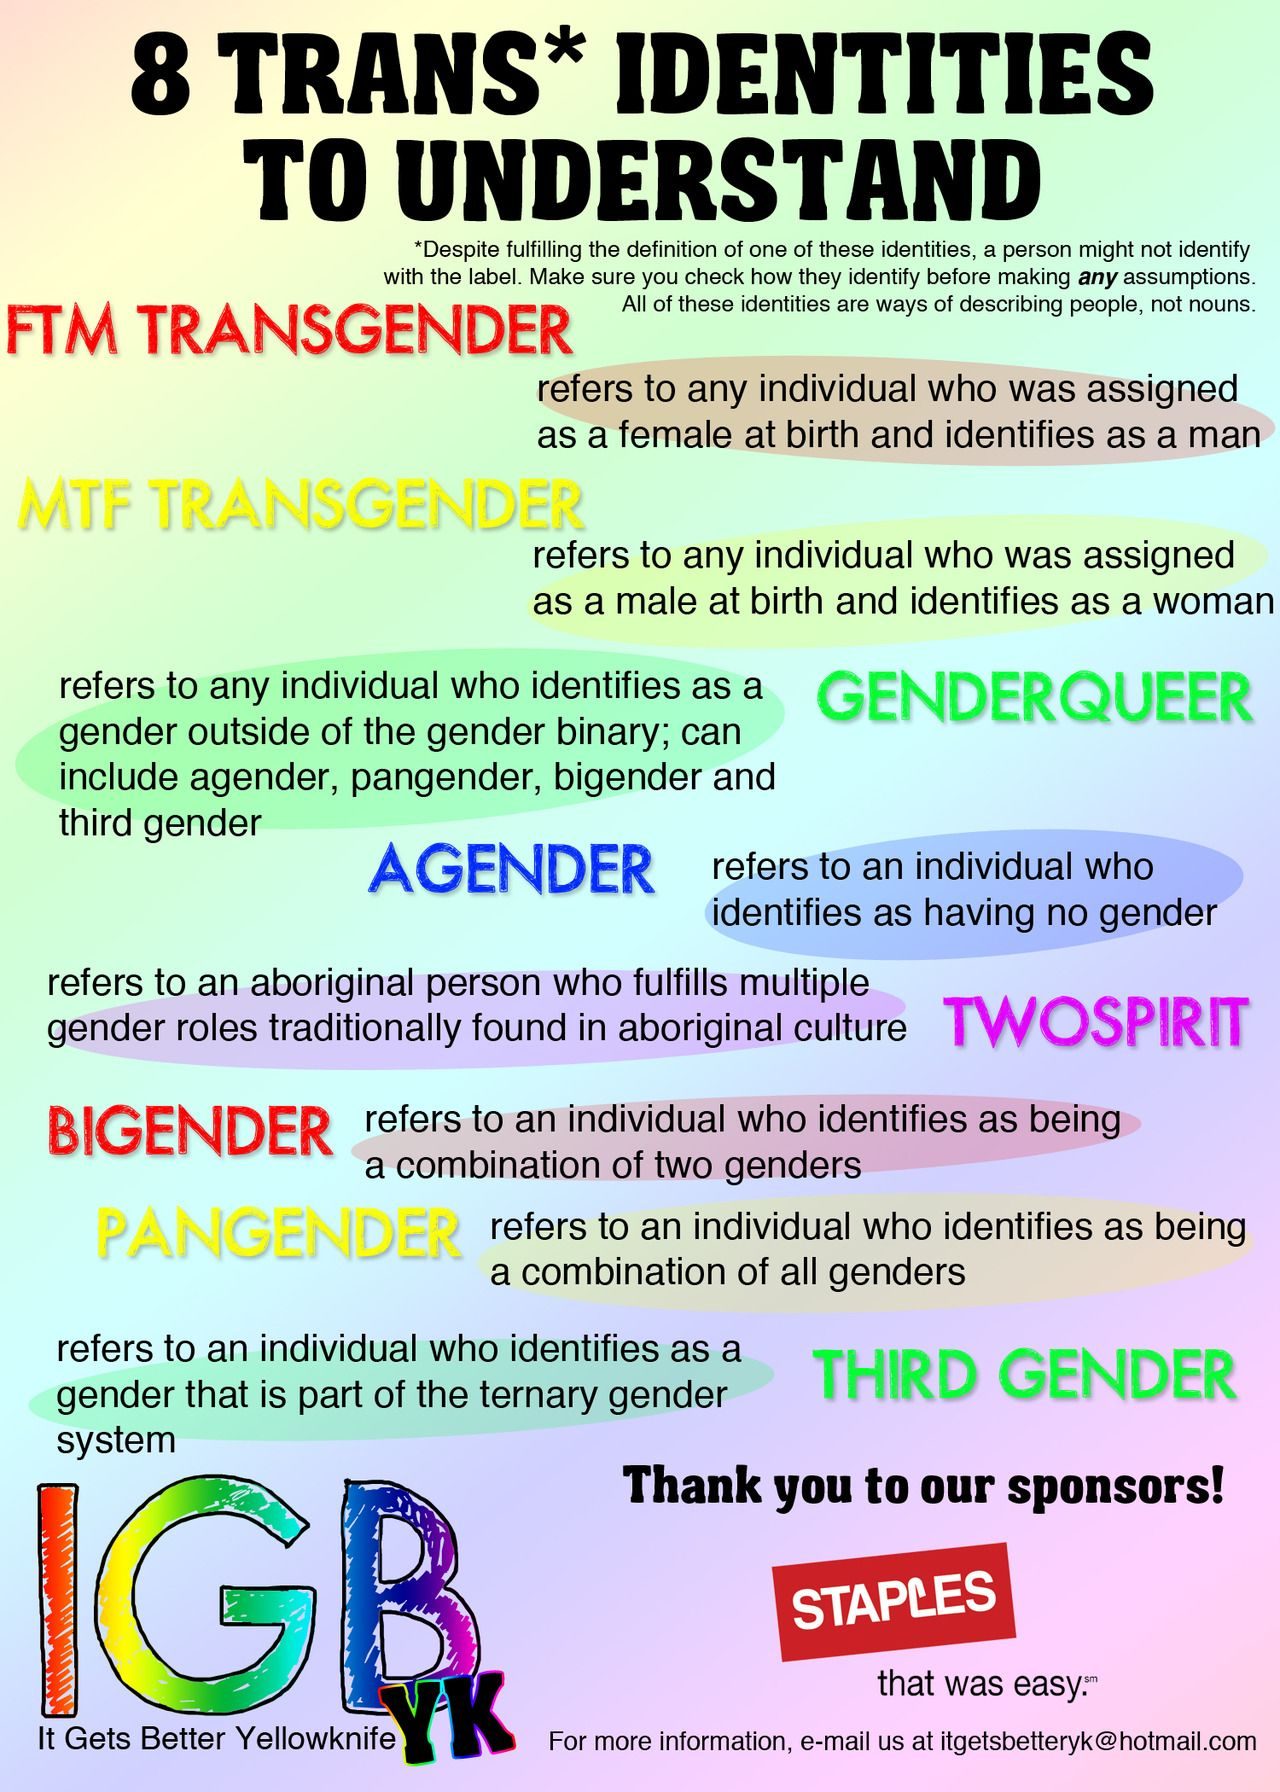 8 Trans Identities To Understand